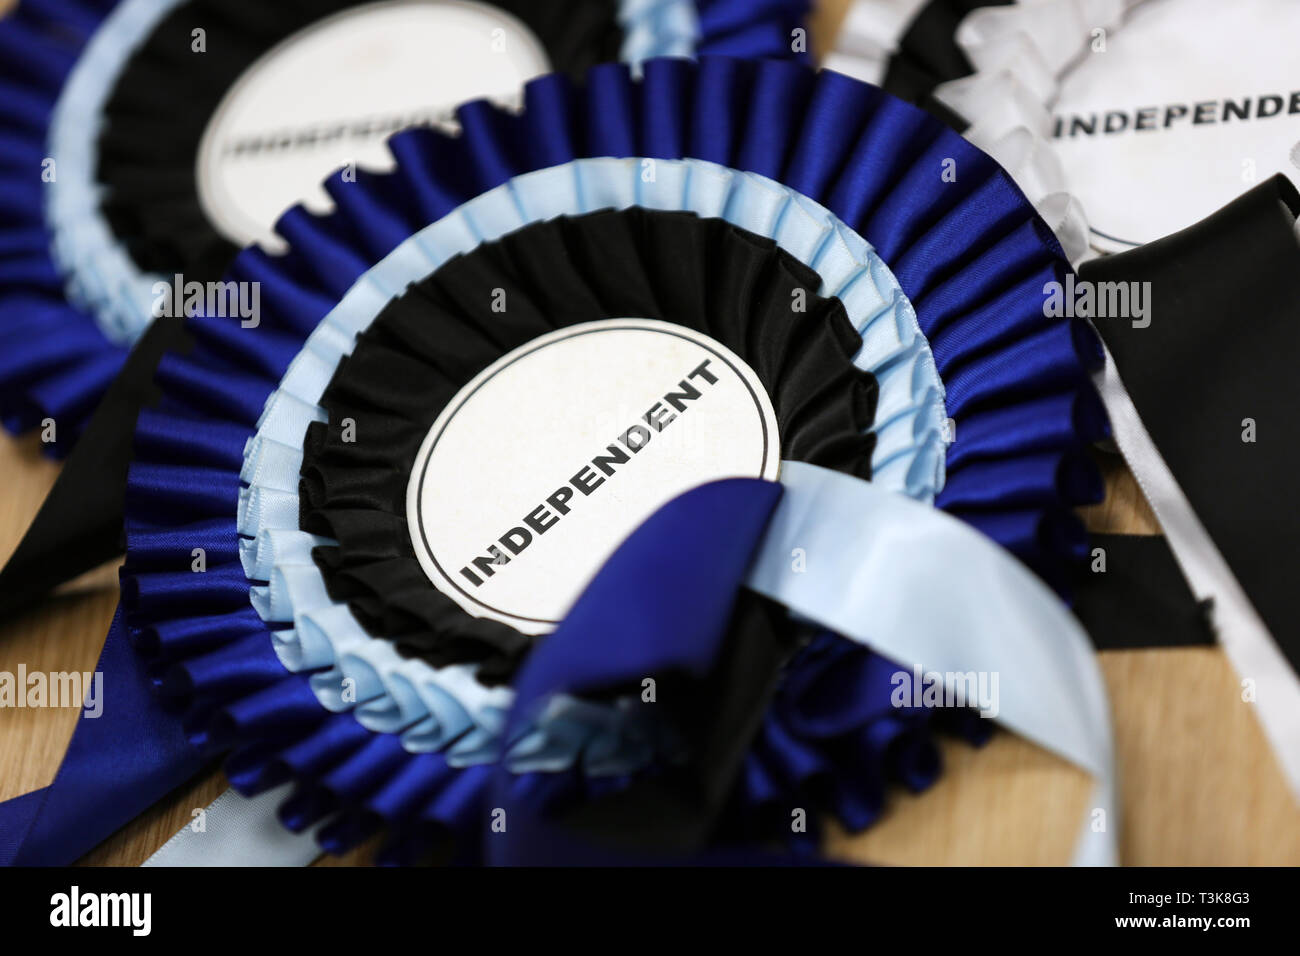 A selection of Independent candidate campaign rosettes pictured in Bognor Regis, West Sussex, UK. - Stock Image